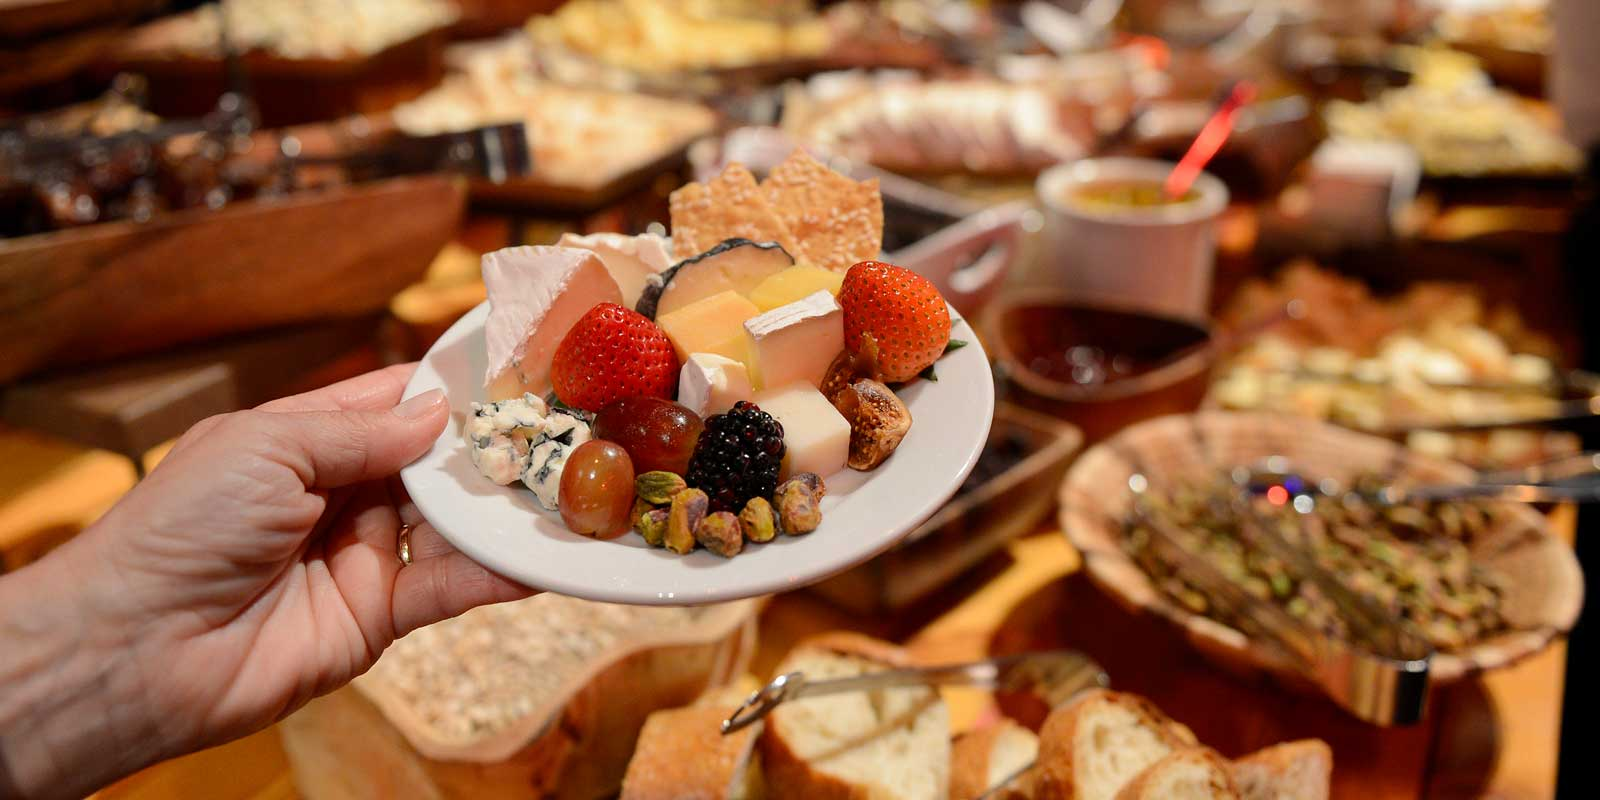 Close up of a small plate filled with various cheeses, fruit, and nuts at the Epcot Party for the Senses.